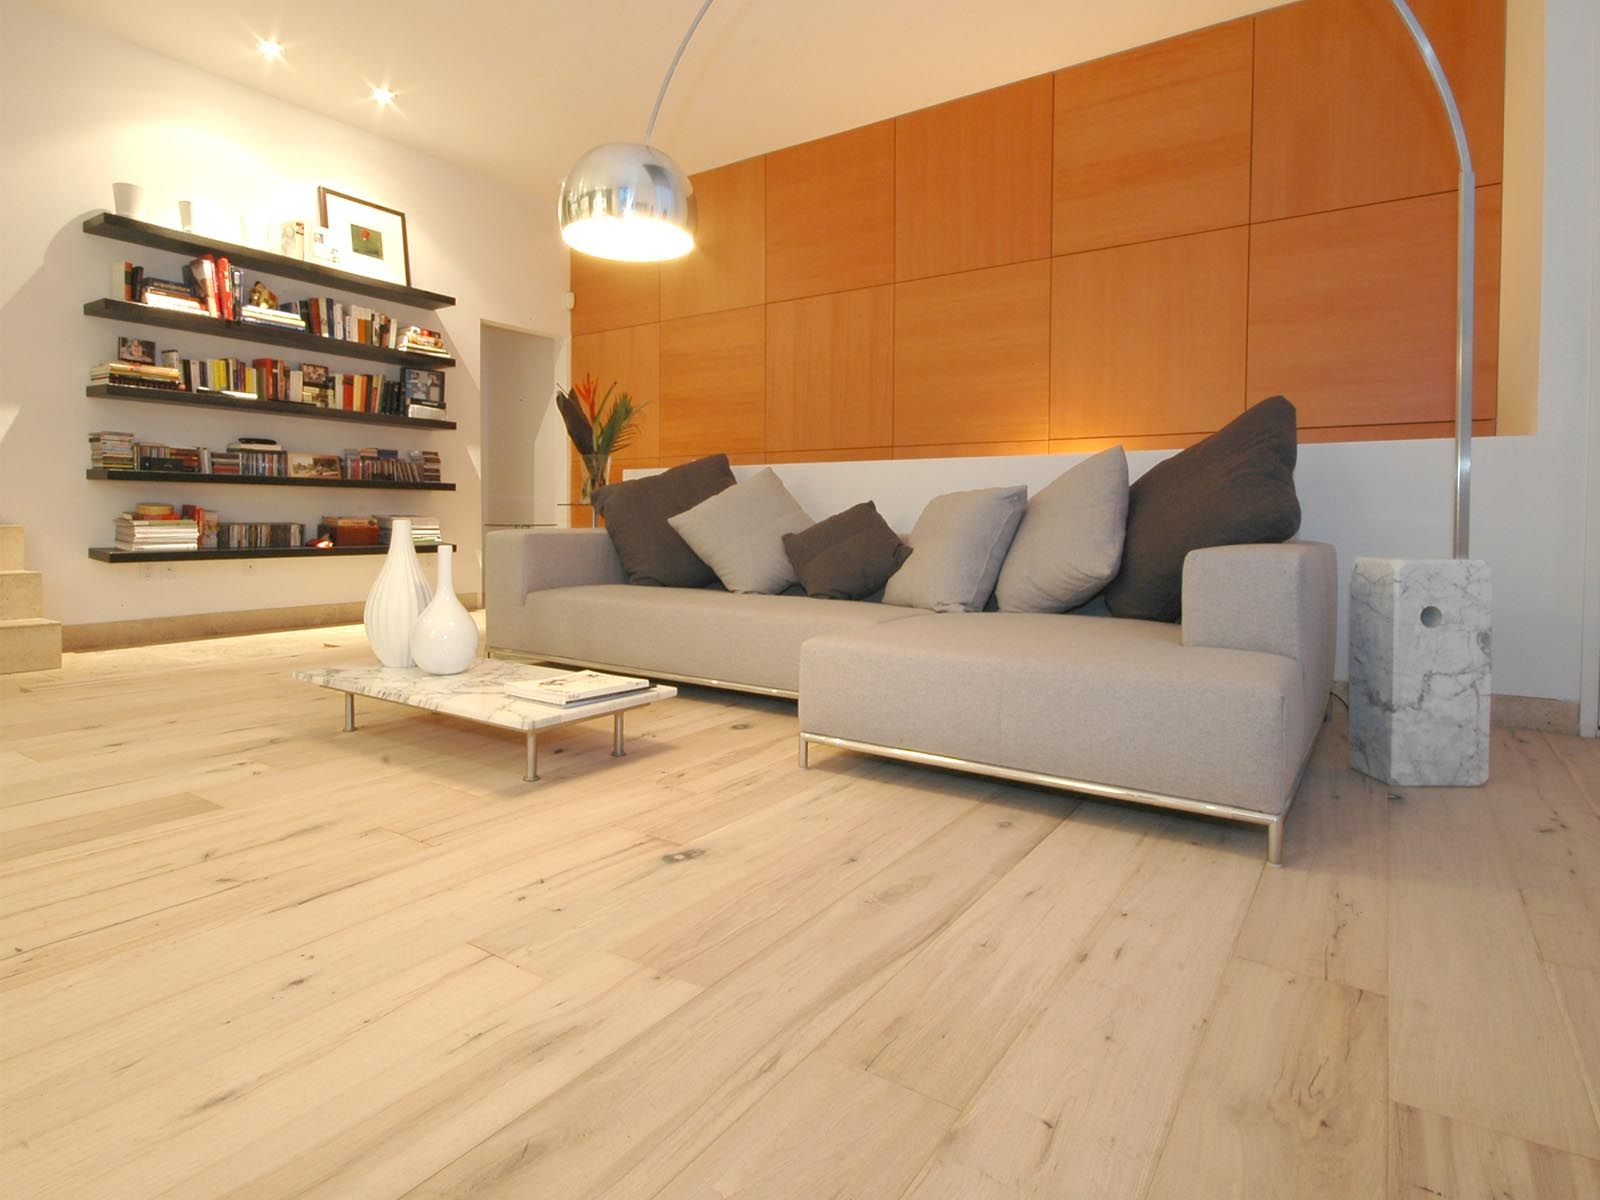 DuChateau Floors Chateau White Oiled plank flooring in living space